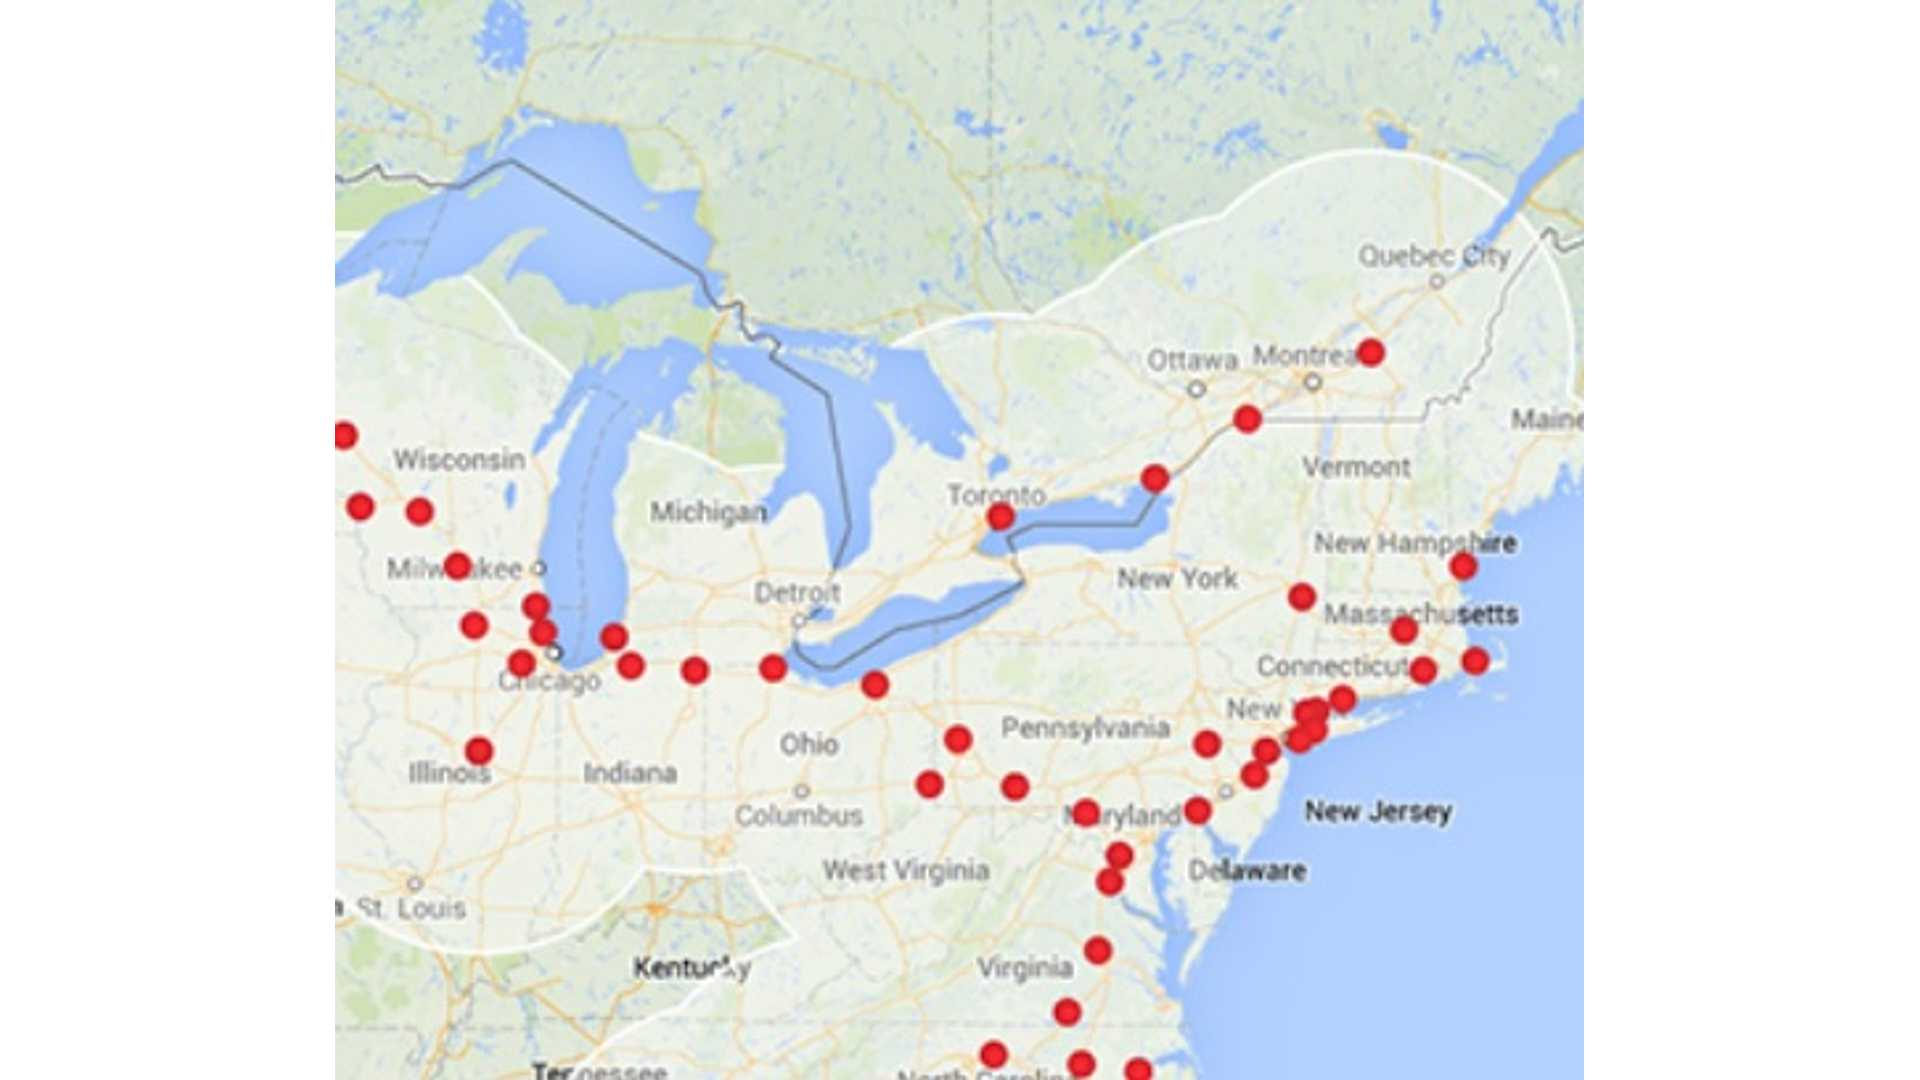 Tesla Supercharging Network In Canada Goes Live In 6 To 8 ...